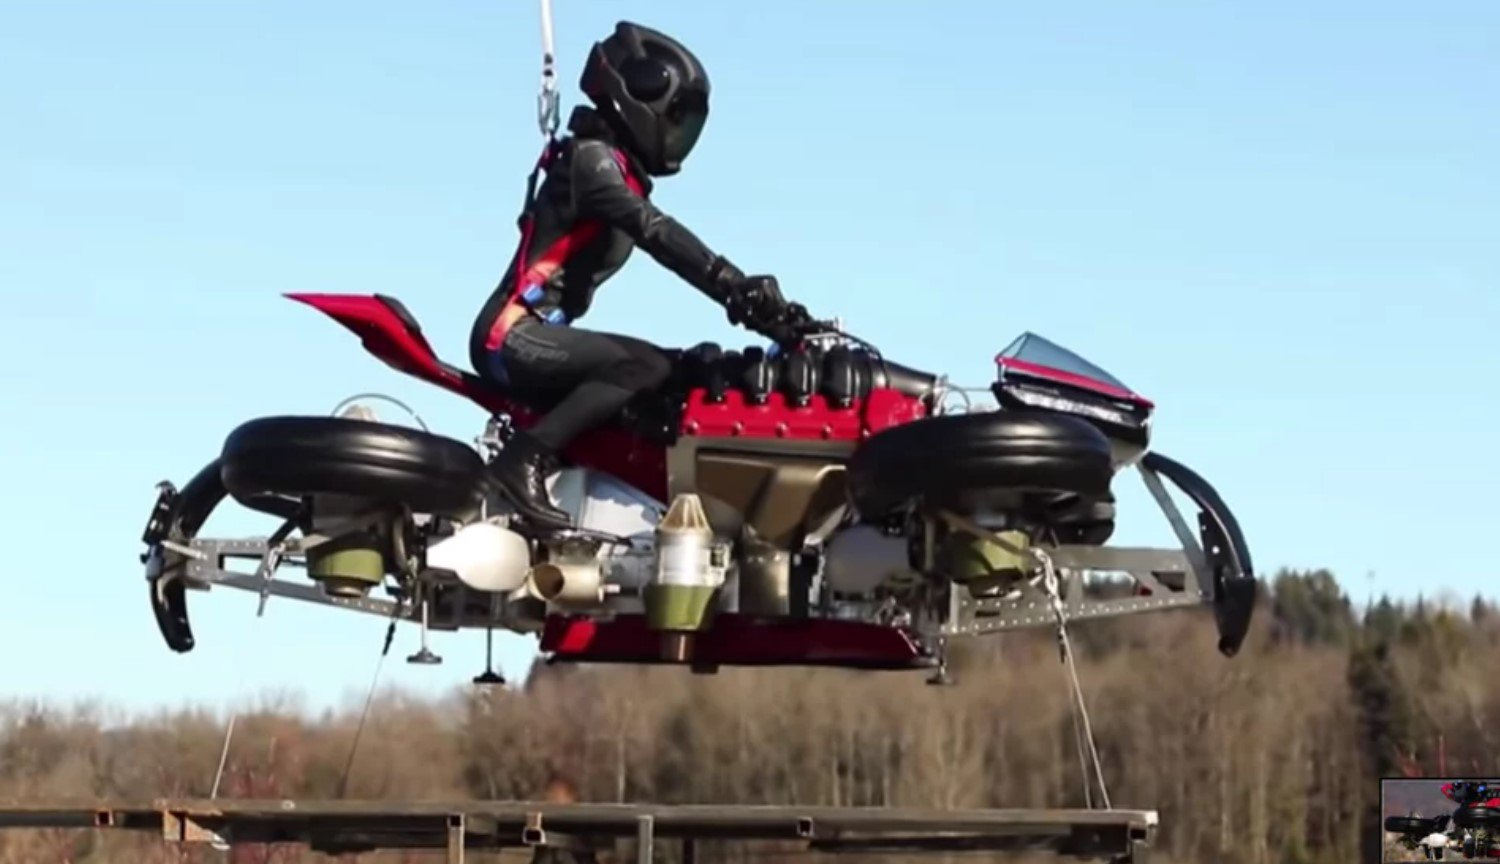 #video | Project of a flying motorcycle Lazareth real — he raised up on metre height